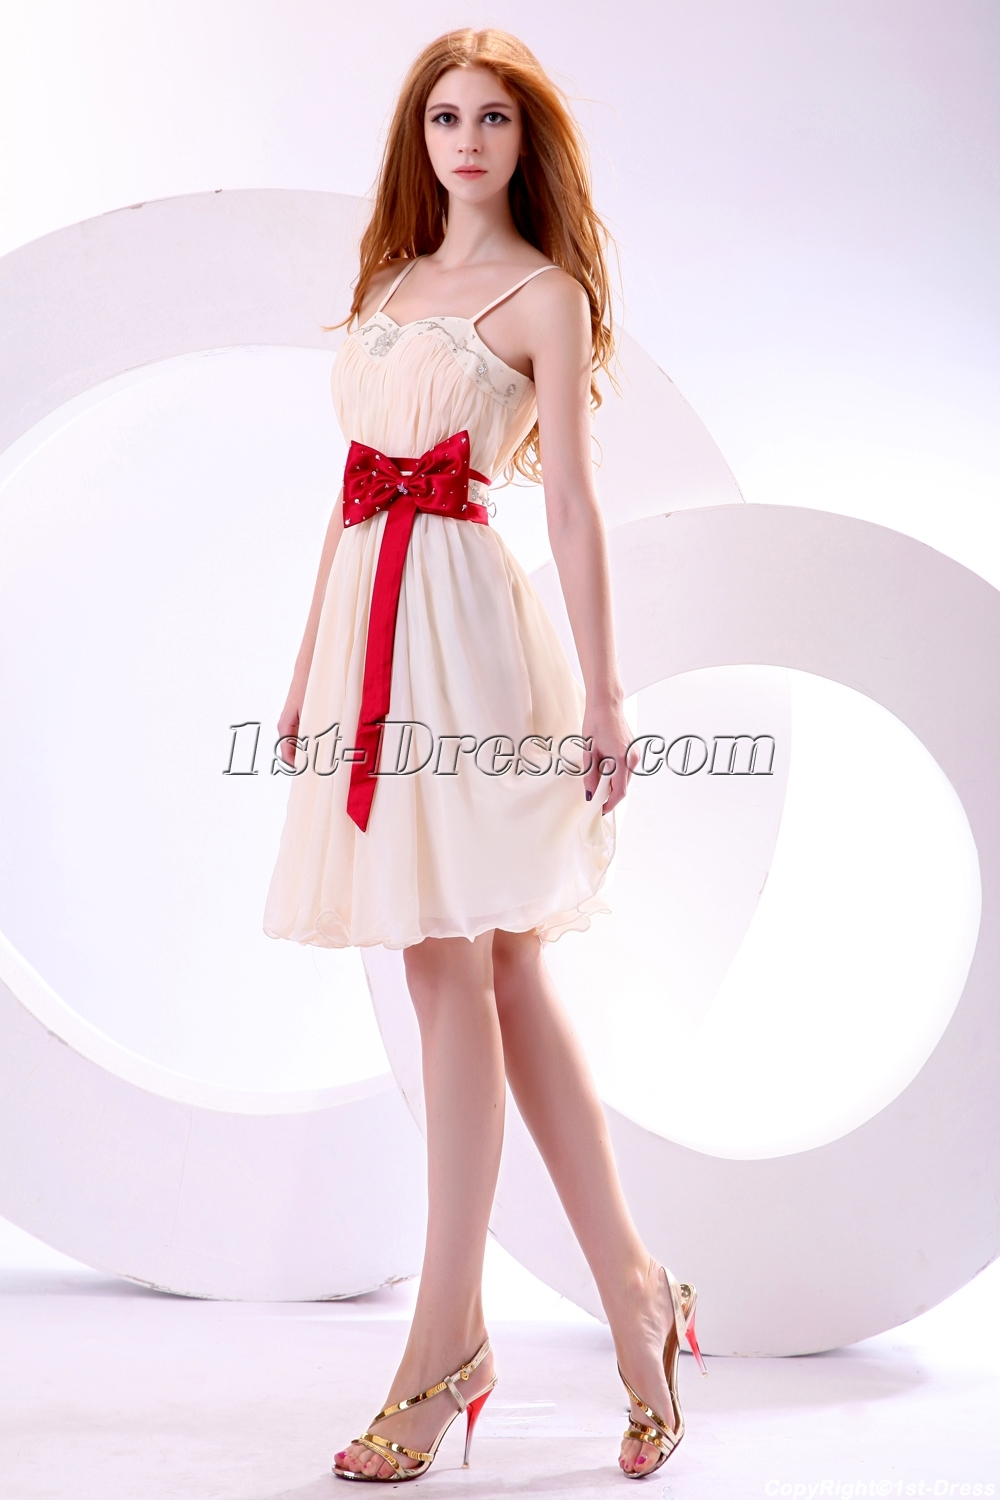 images/201311/big/Pretty-Spaghetti-Straps-Homecoming-Dress-with-Red-Satin-Waistband-3505-b-1-1384272569.jpg